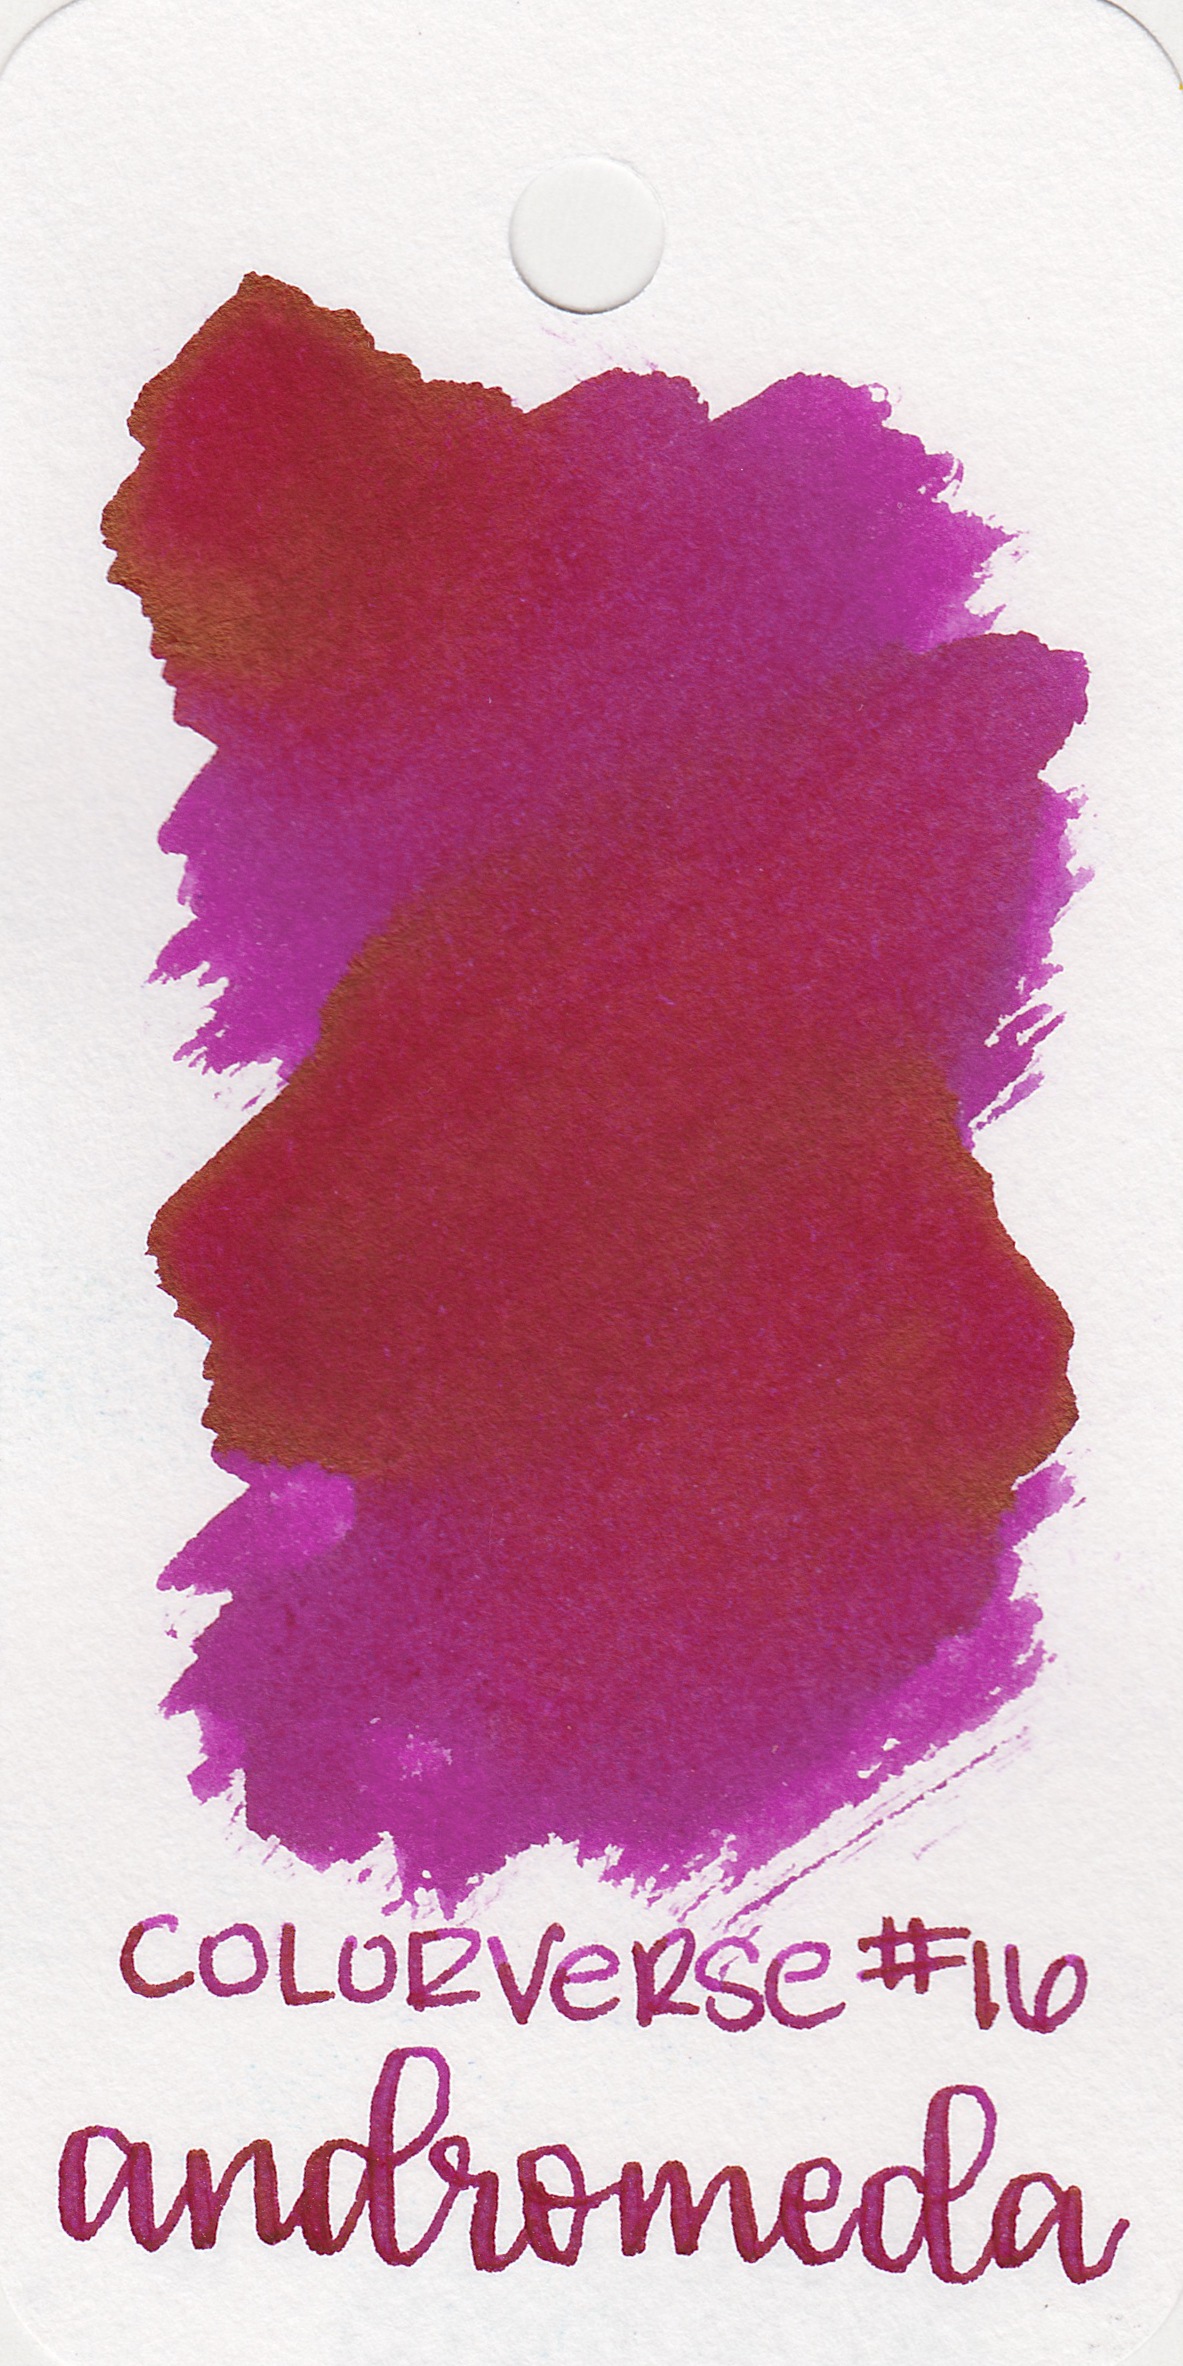 The color: - Andromeda is a bright fuchsia pink.